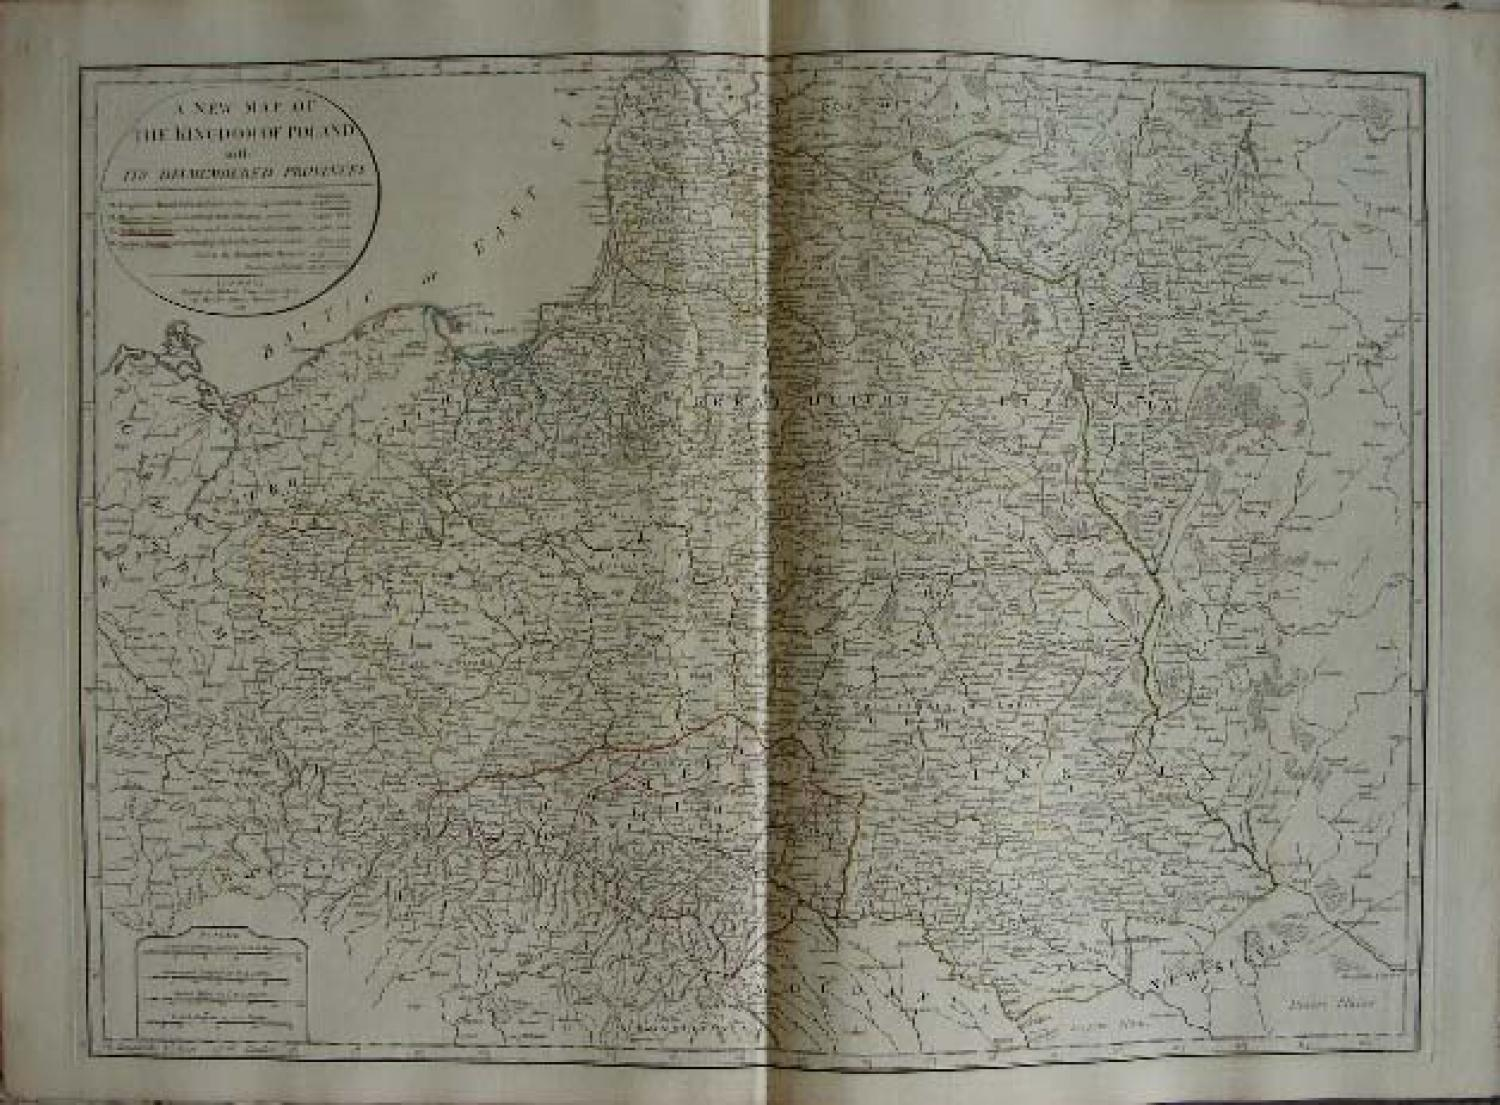 SOLD A new map of the Kingdom of Poland with its dismembered provinces ...